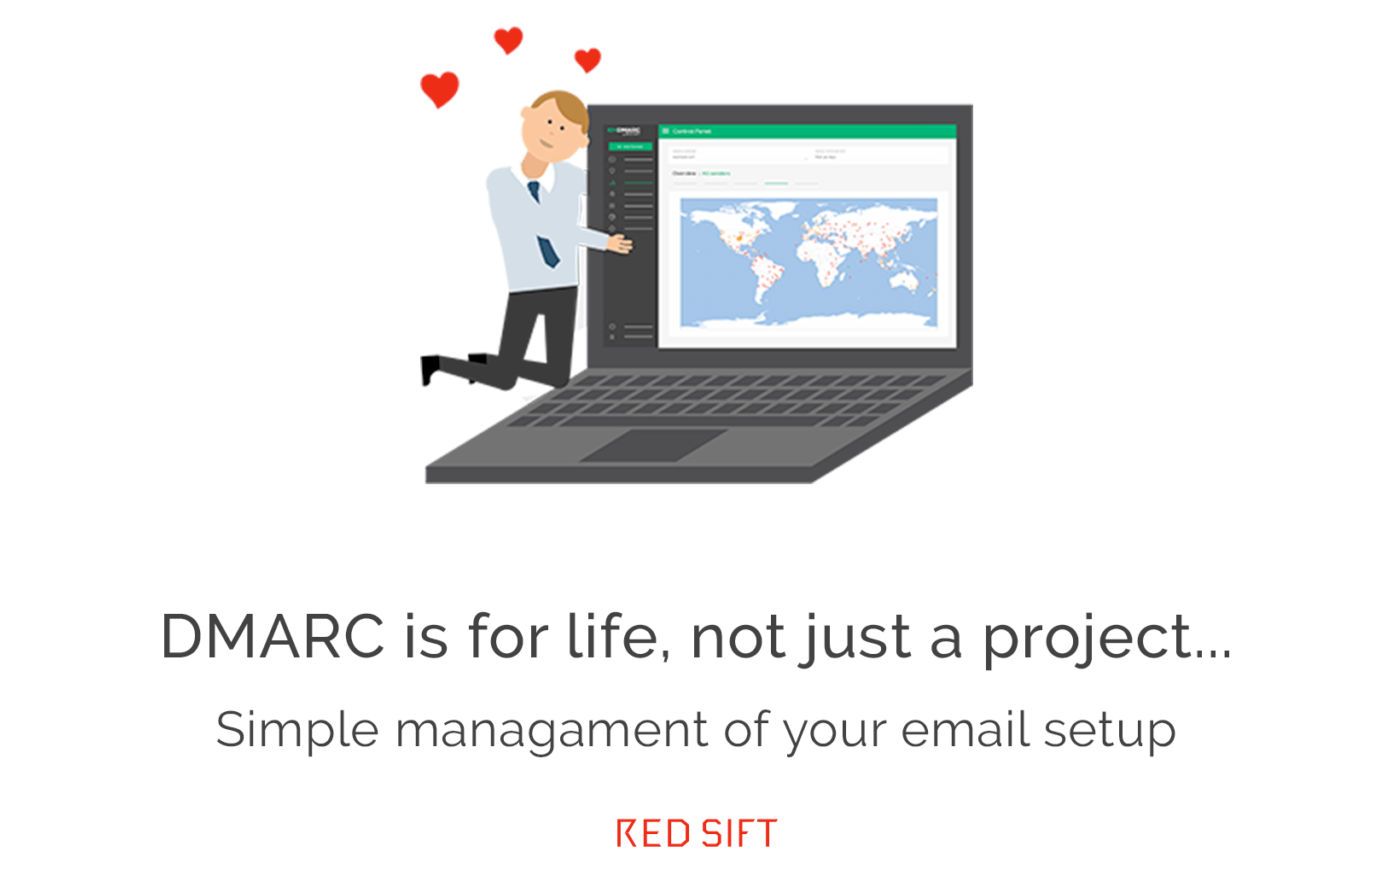 DMARC is for life not just a project!